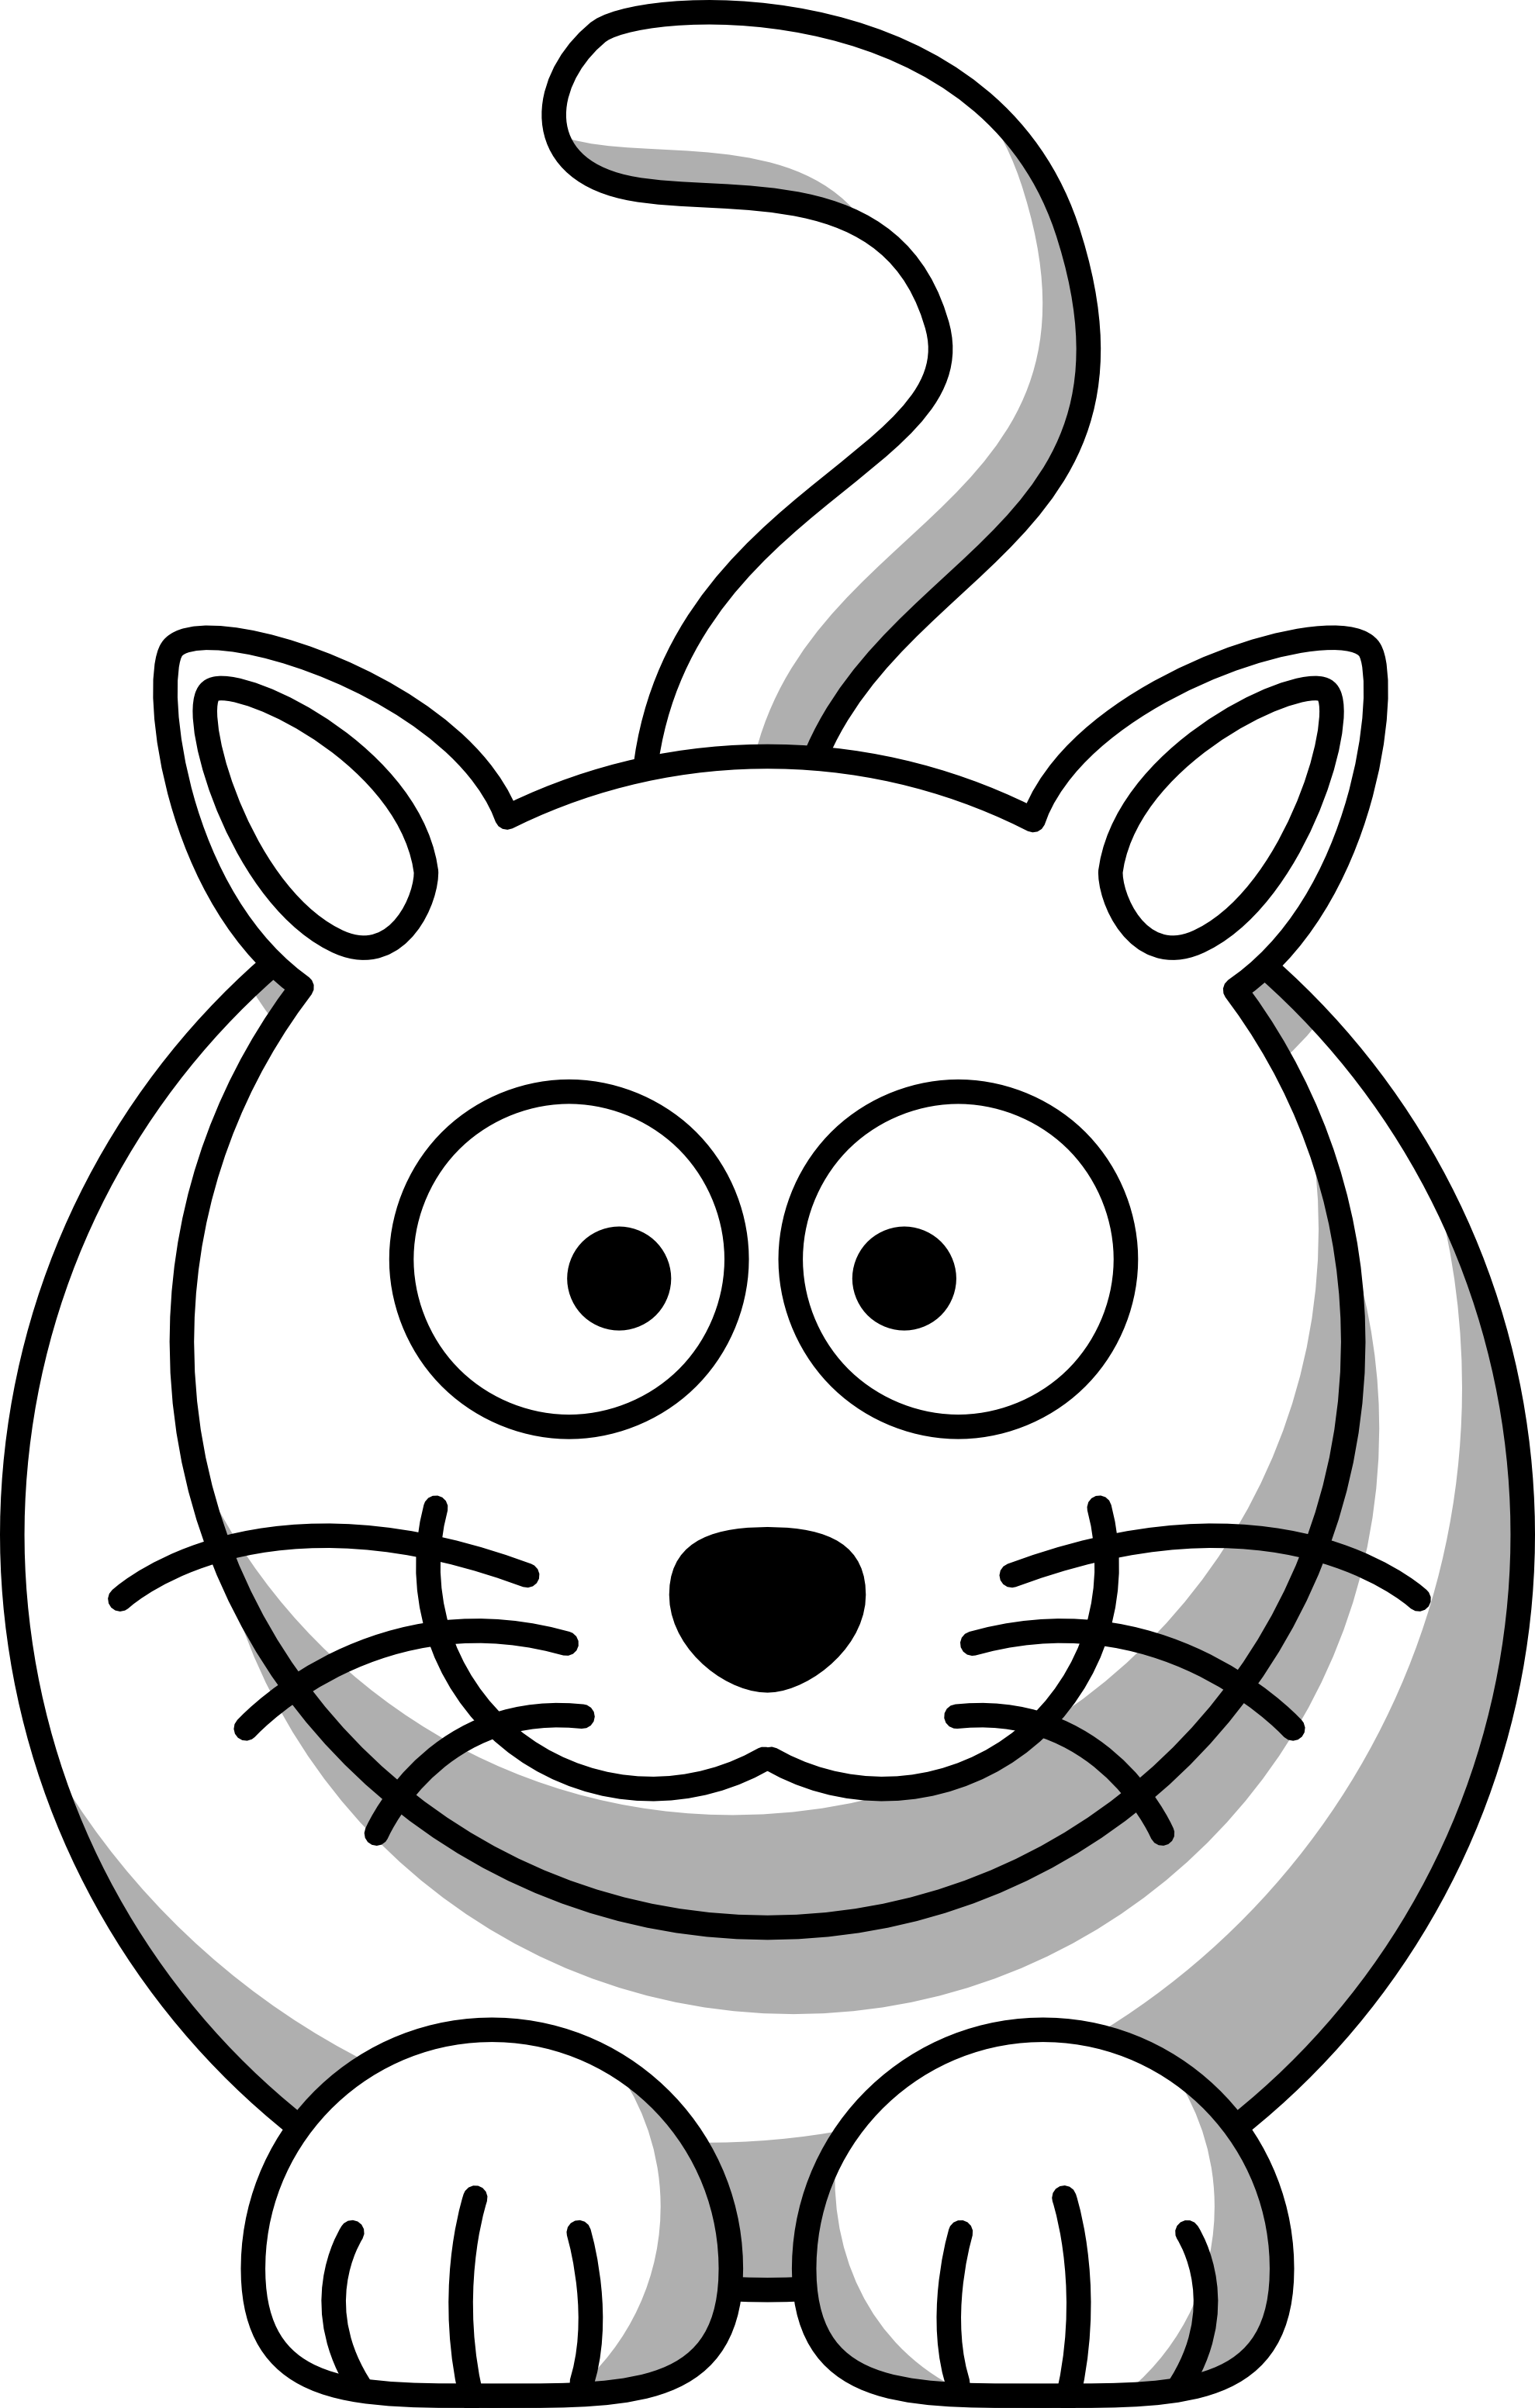 Black And White Cartoon Animals - ClipArt Best